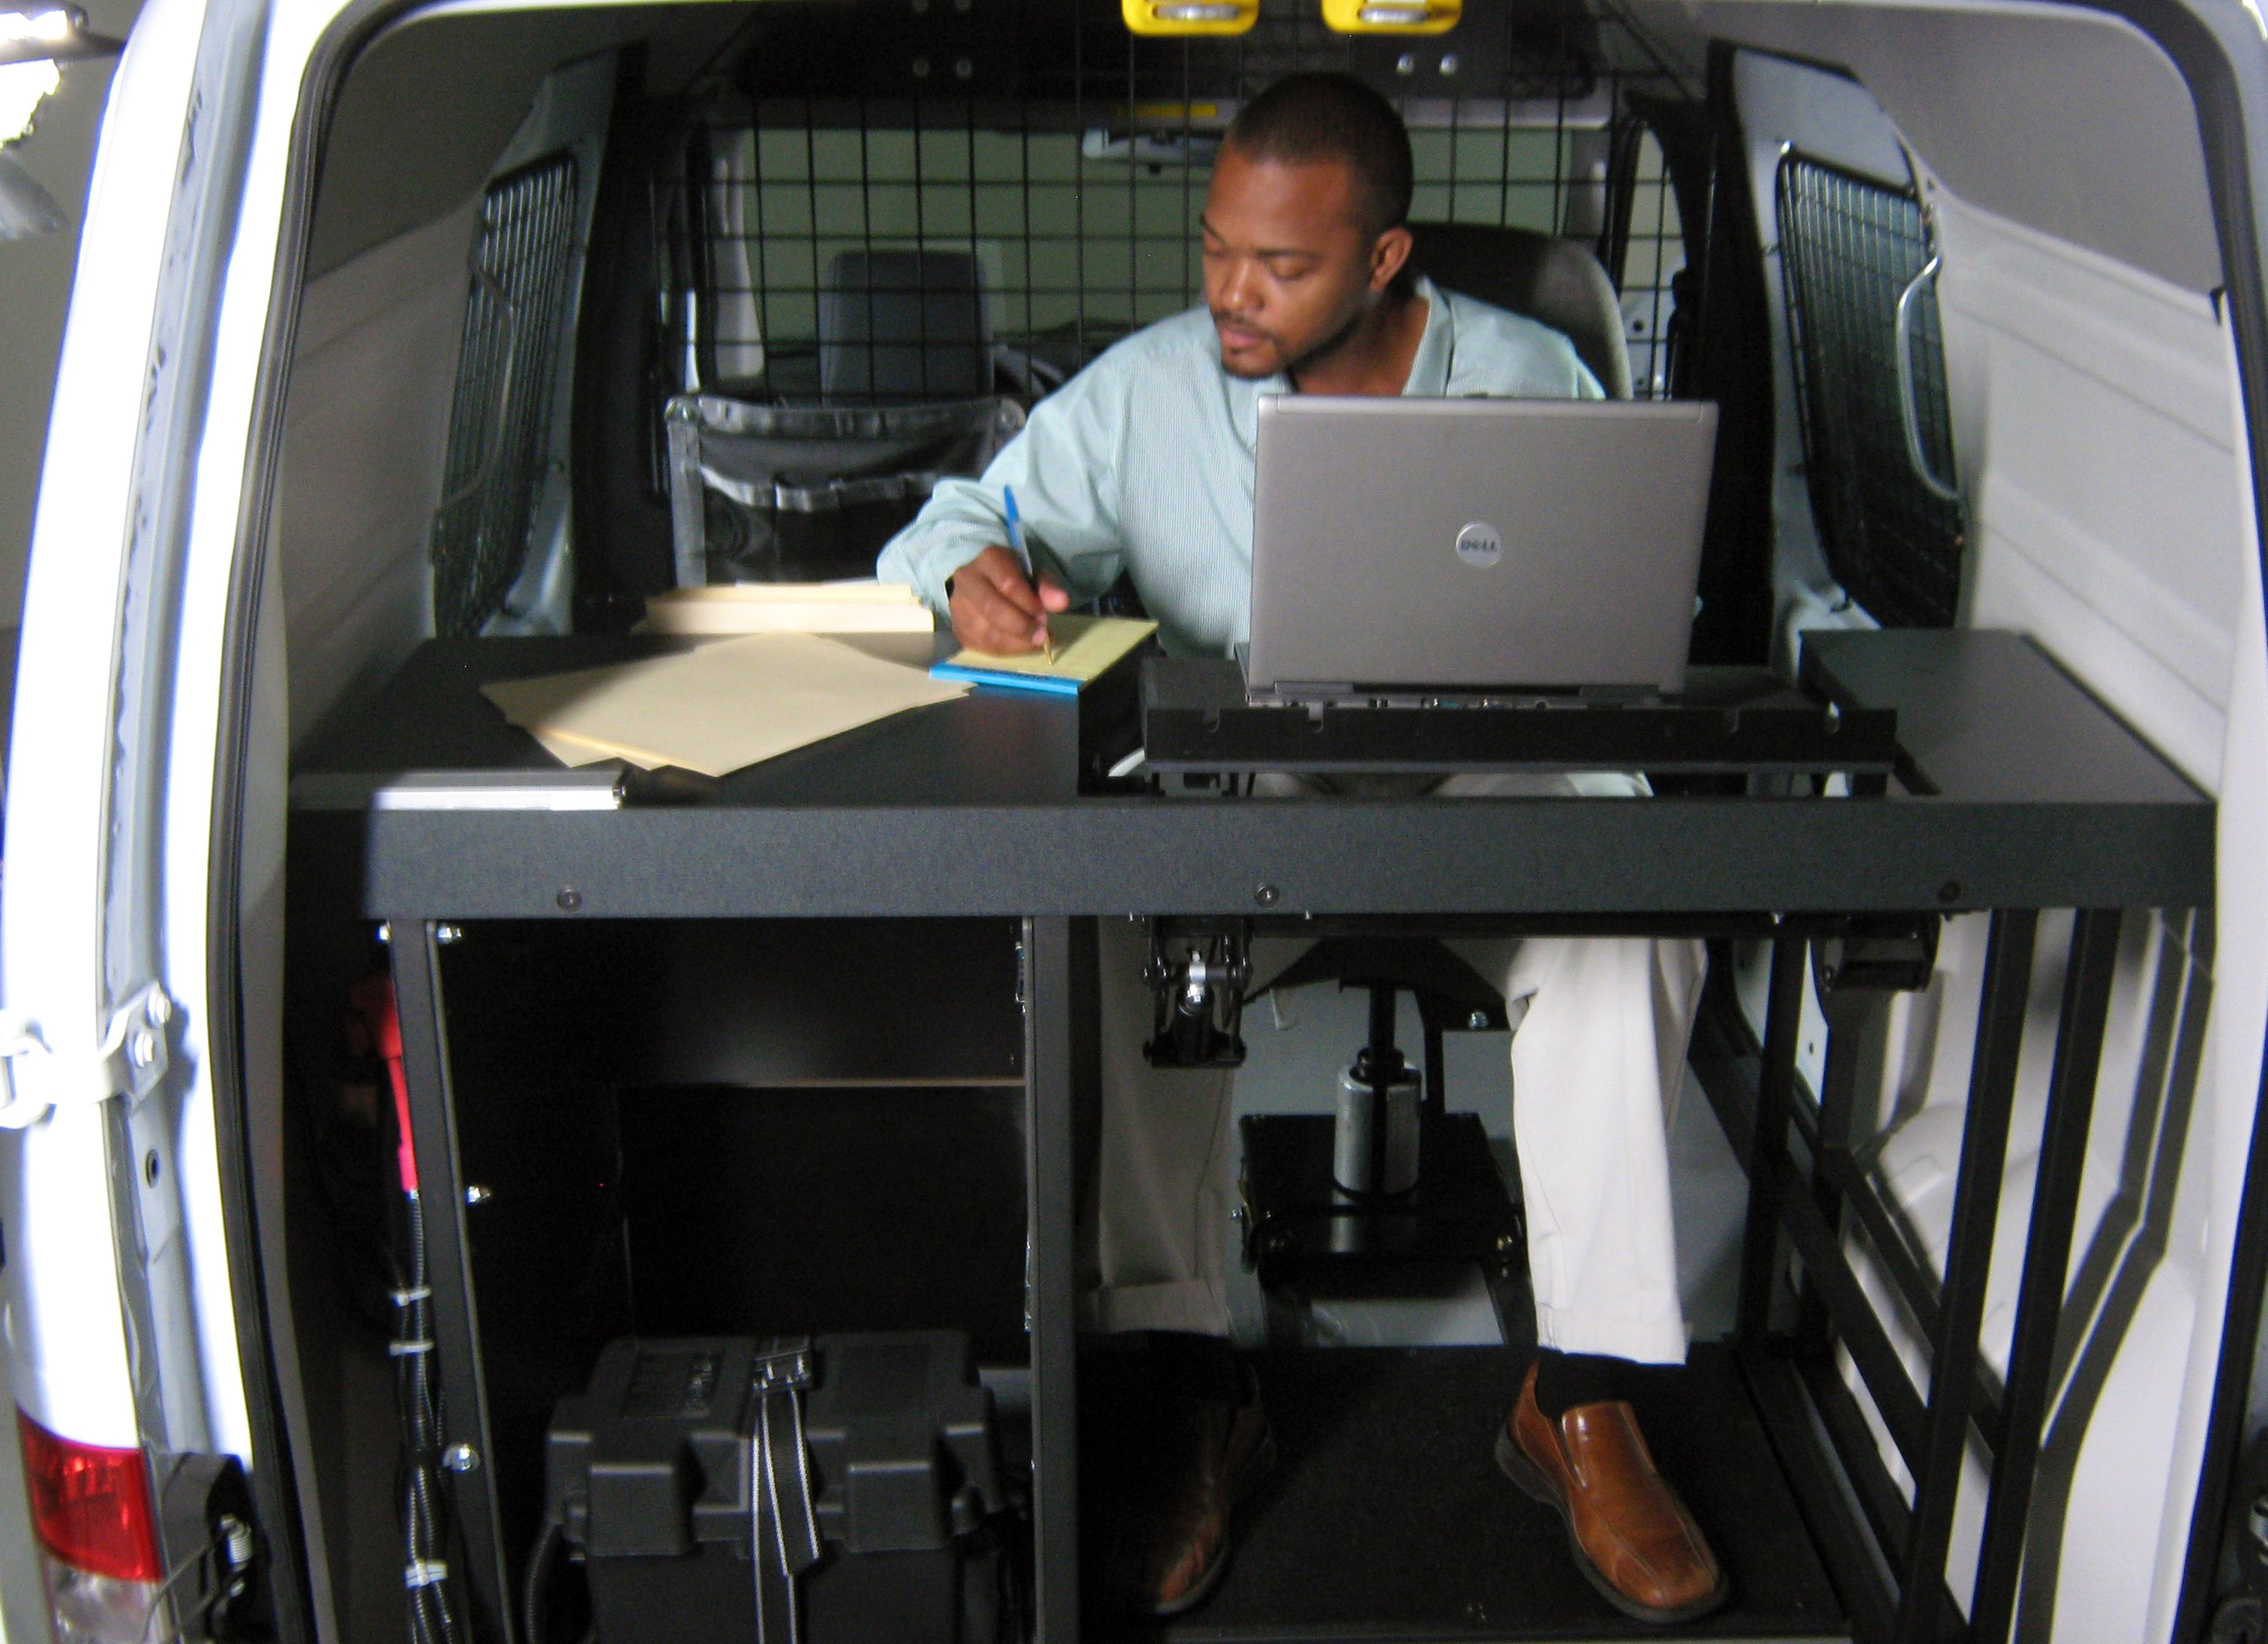 17 Best images about Mobile Office Space on Pinterest | Technology ...